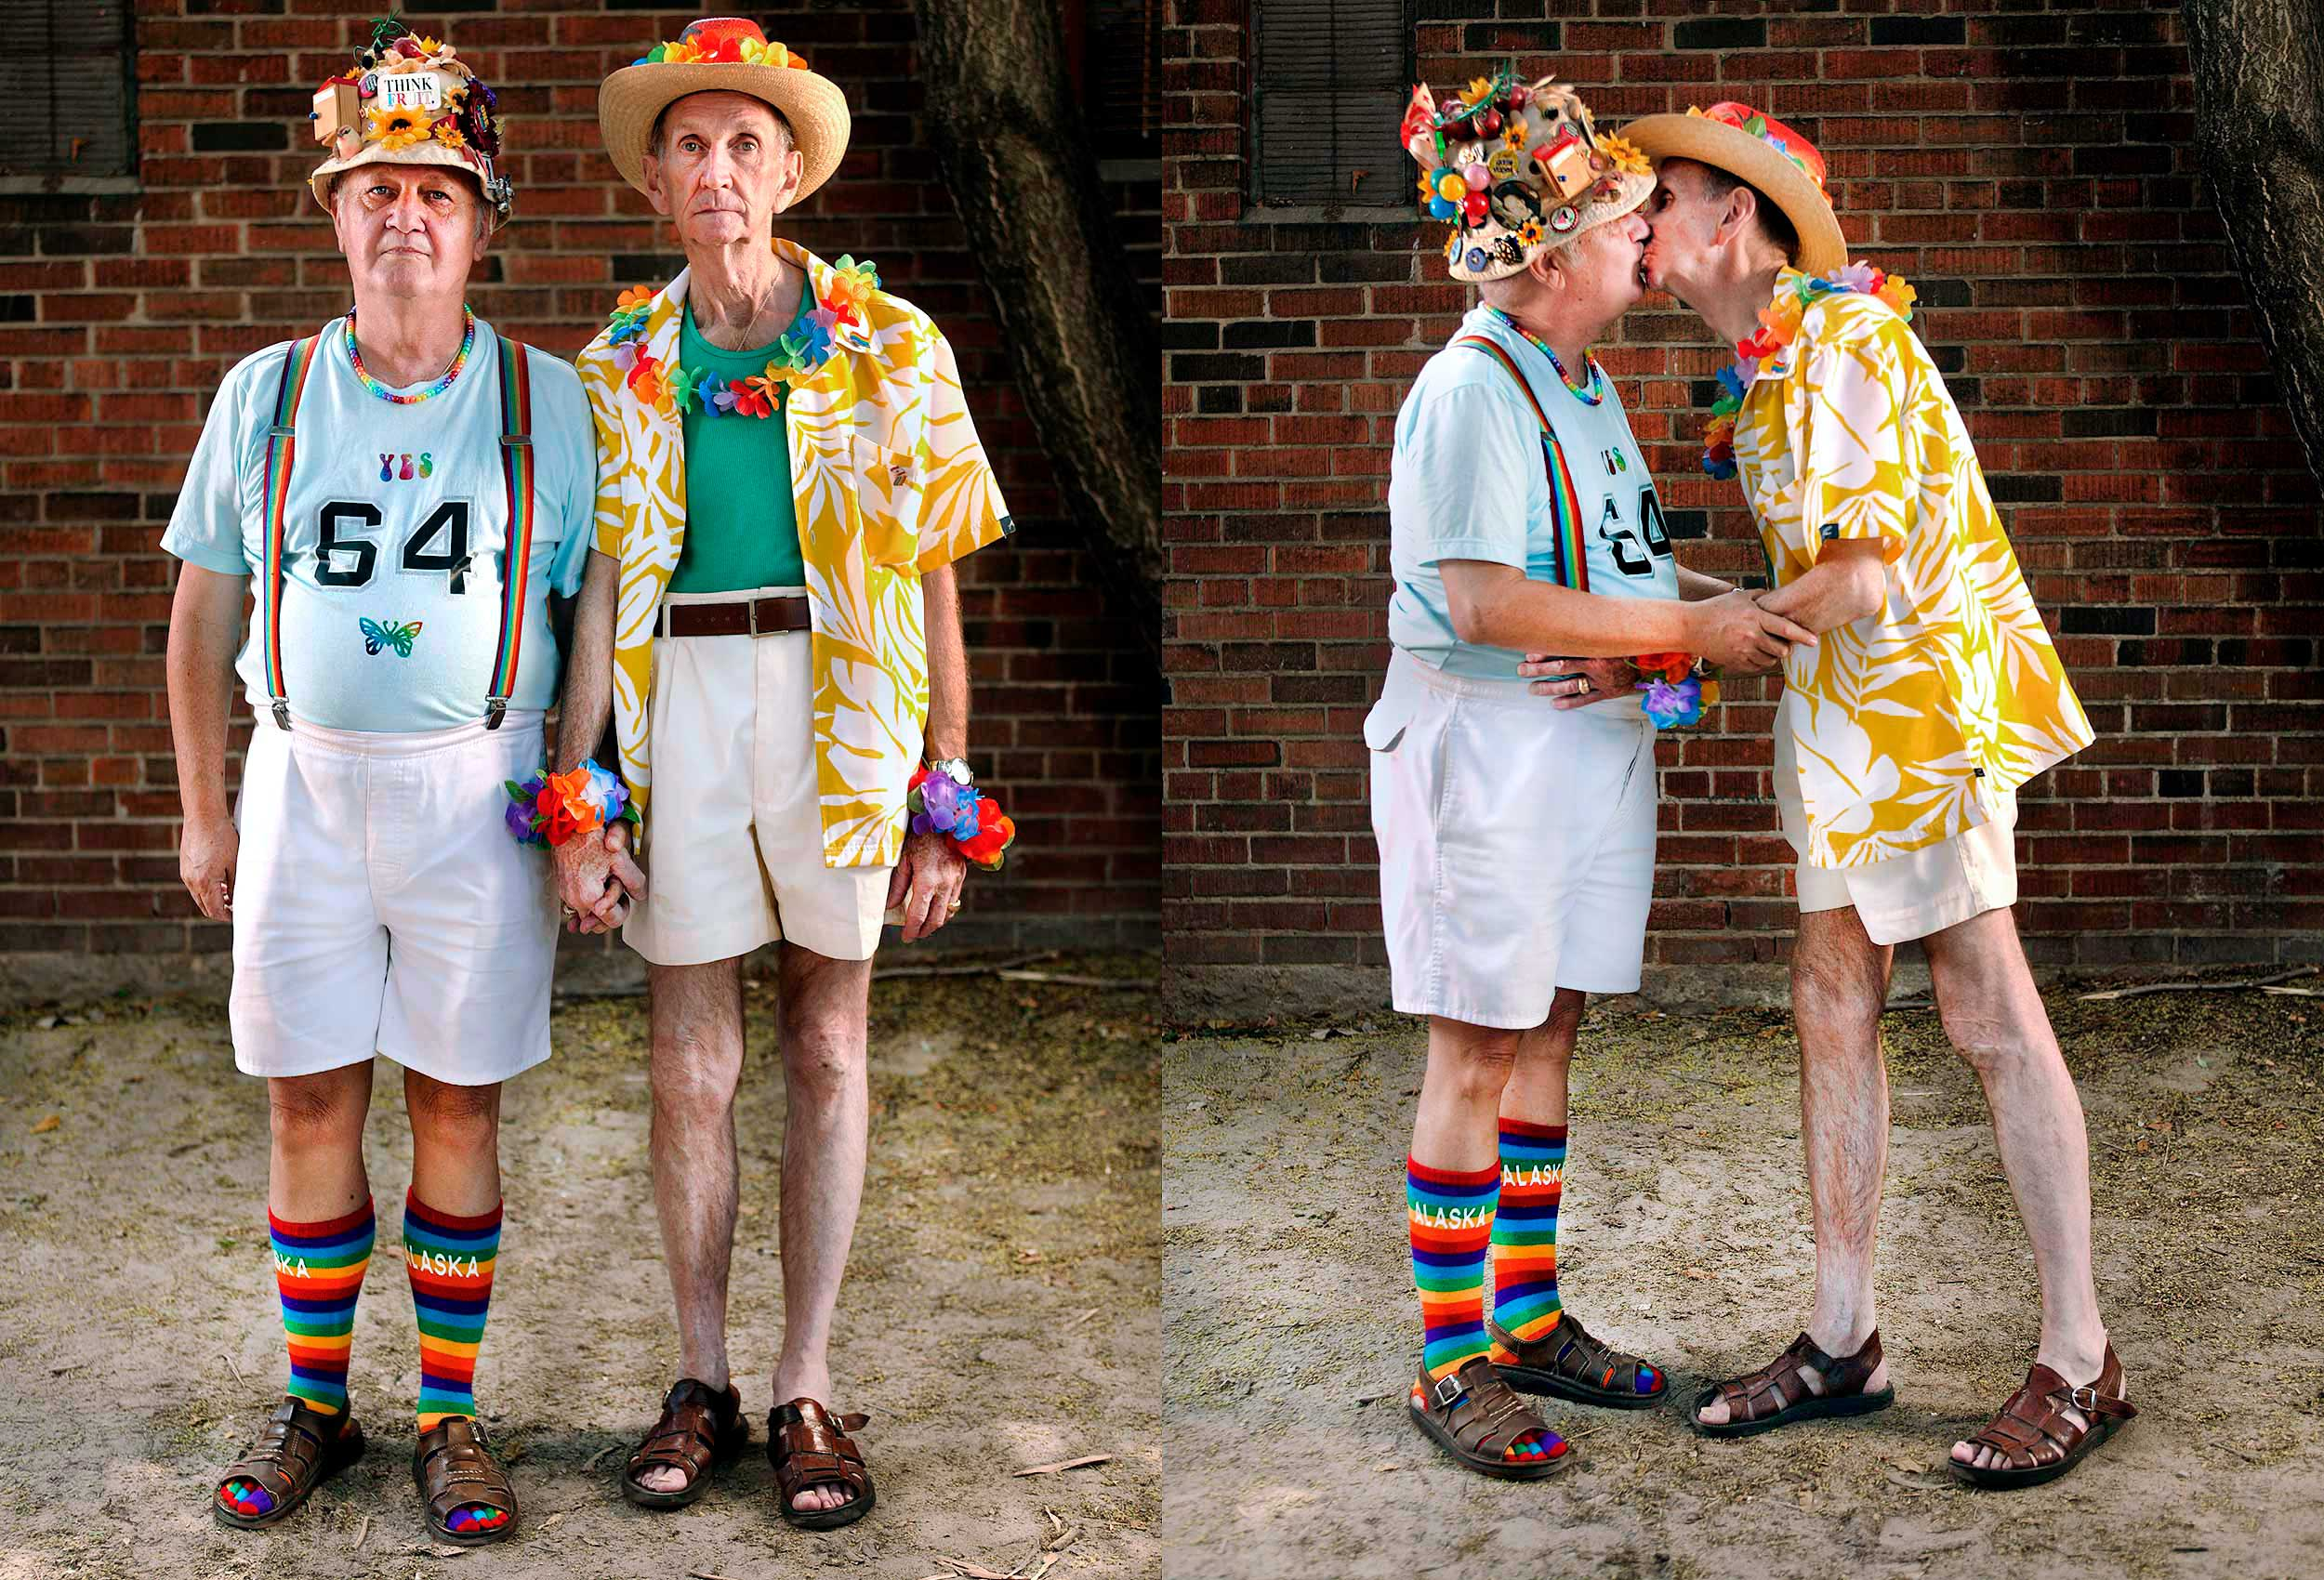 a-portrait-of-an-older-gay-male-couple-at-the-toronto-gay-pride-parade